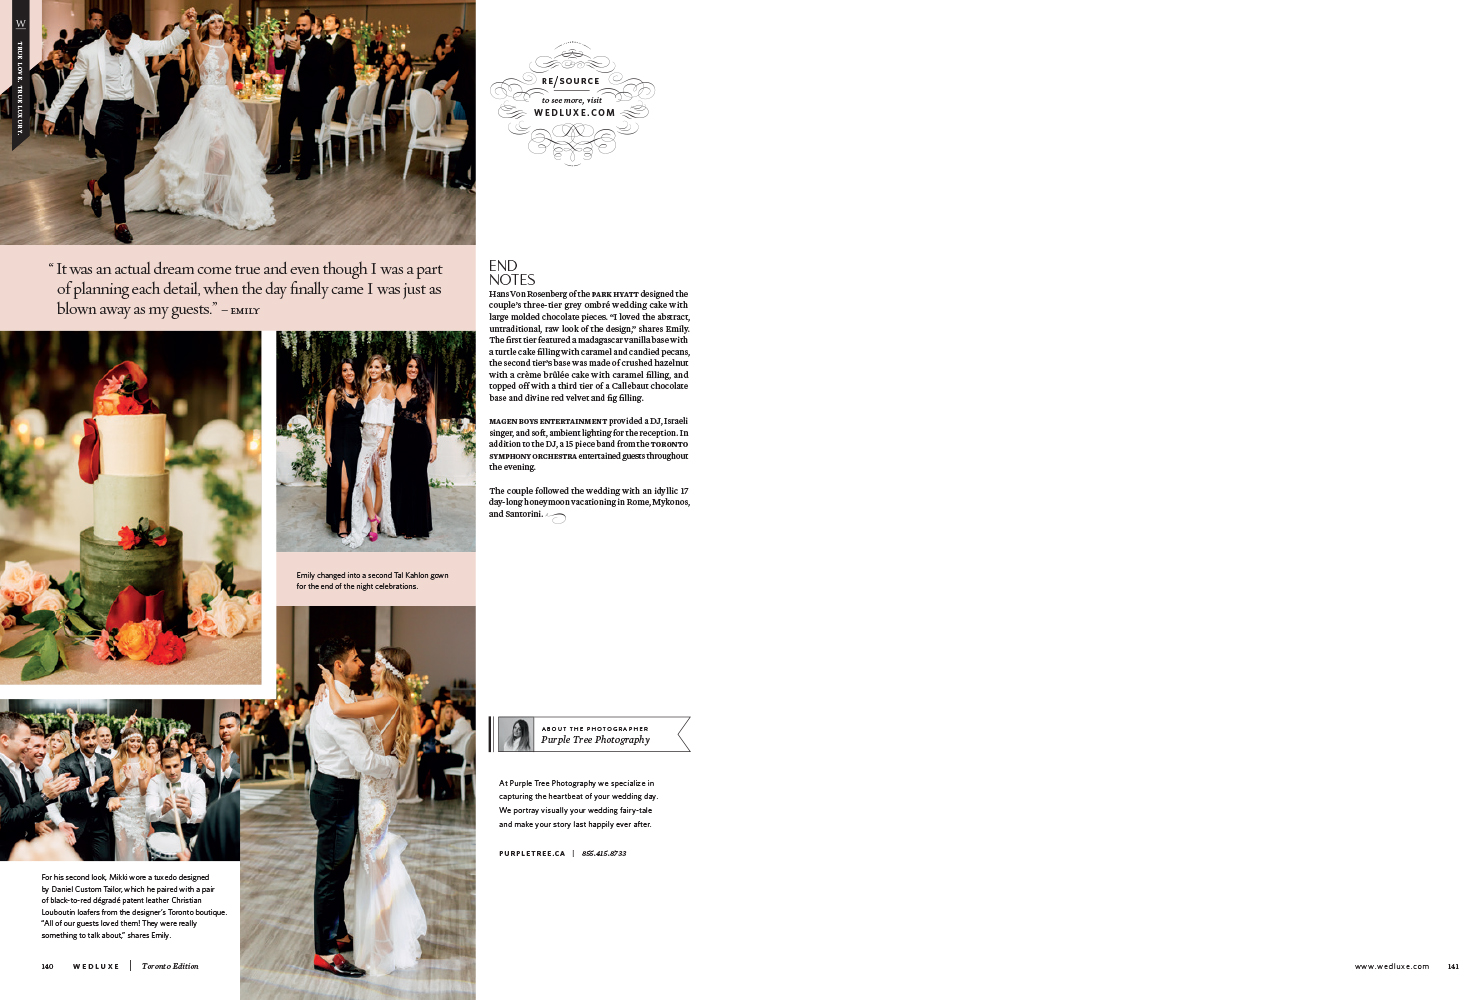 WS17_TOR_Download_RealWed_04-4